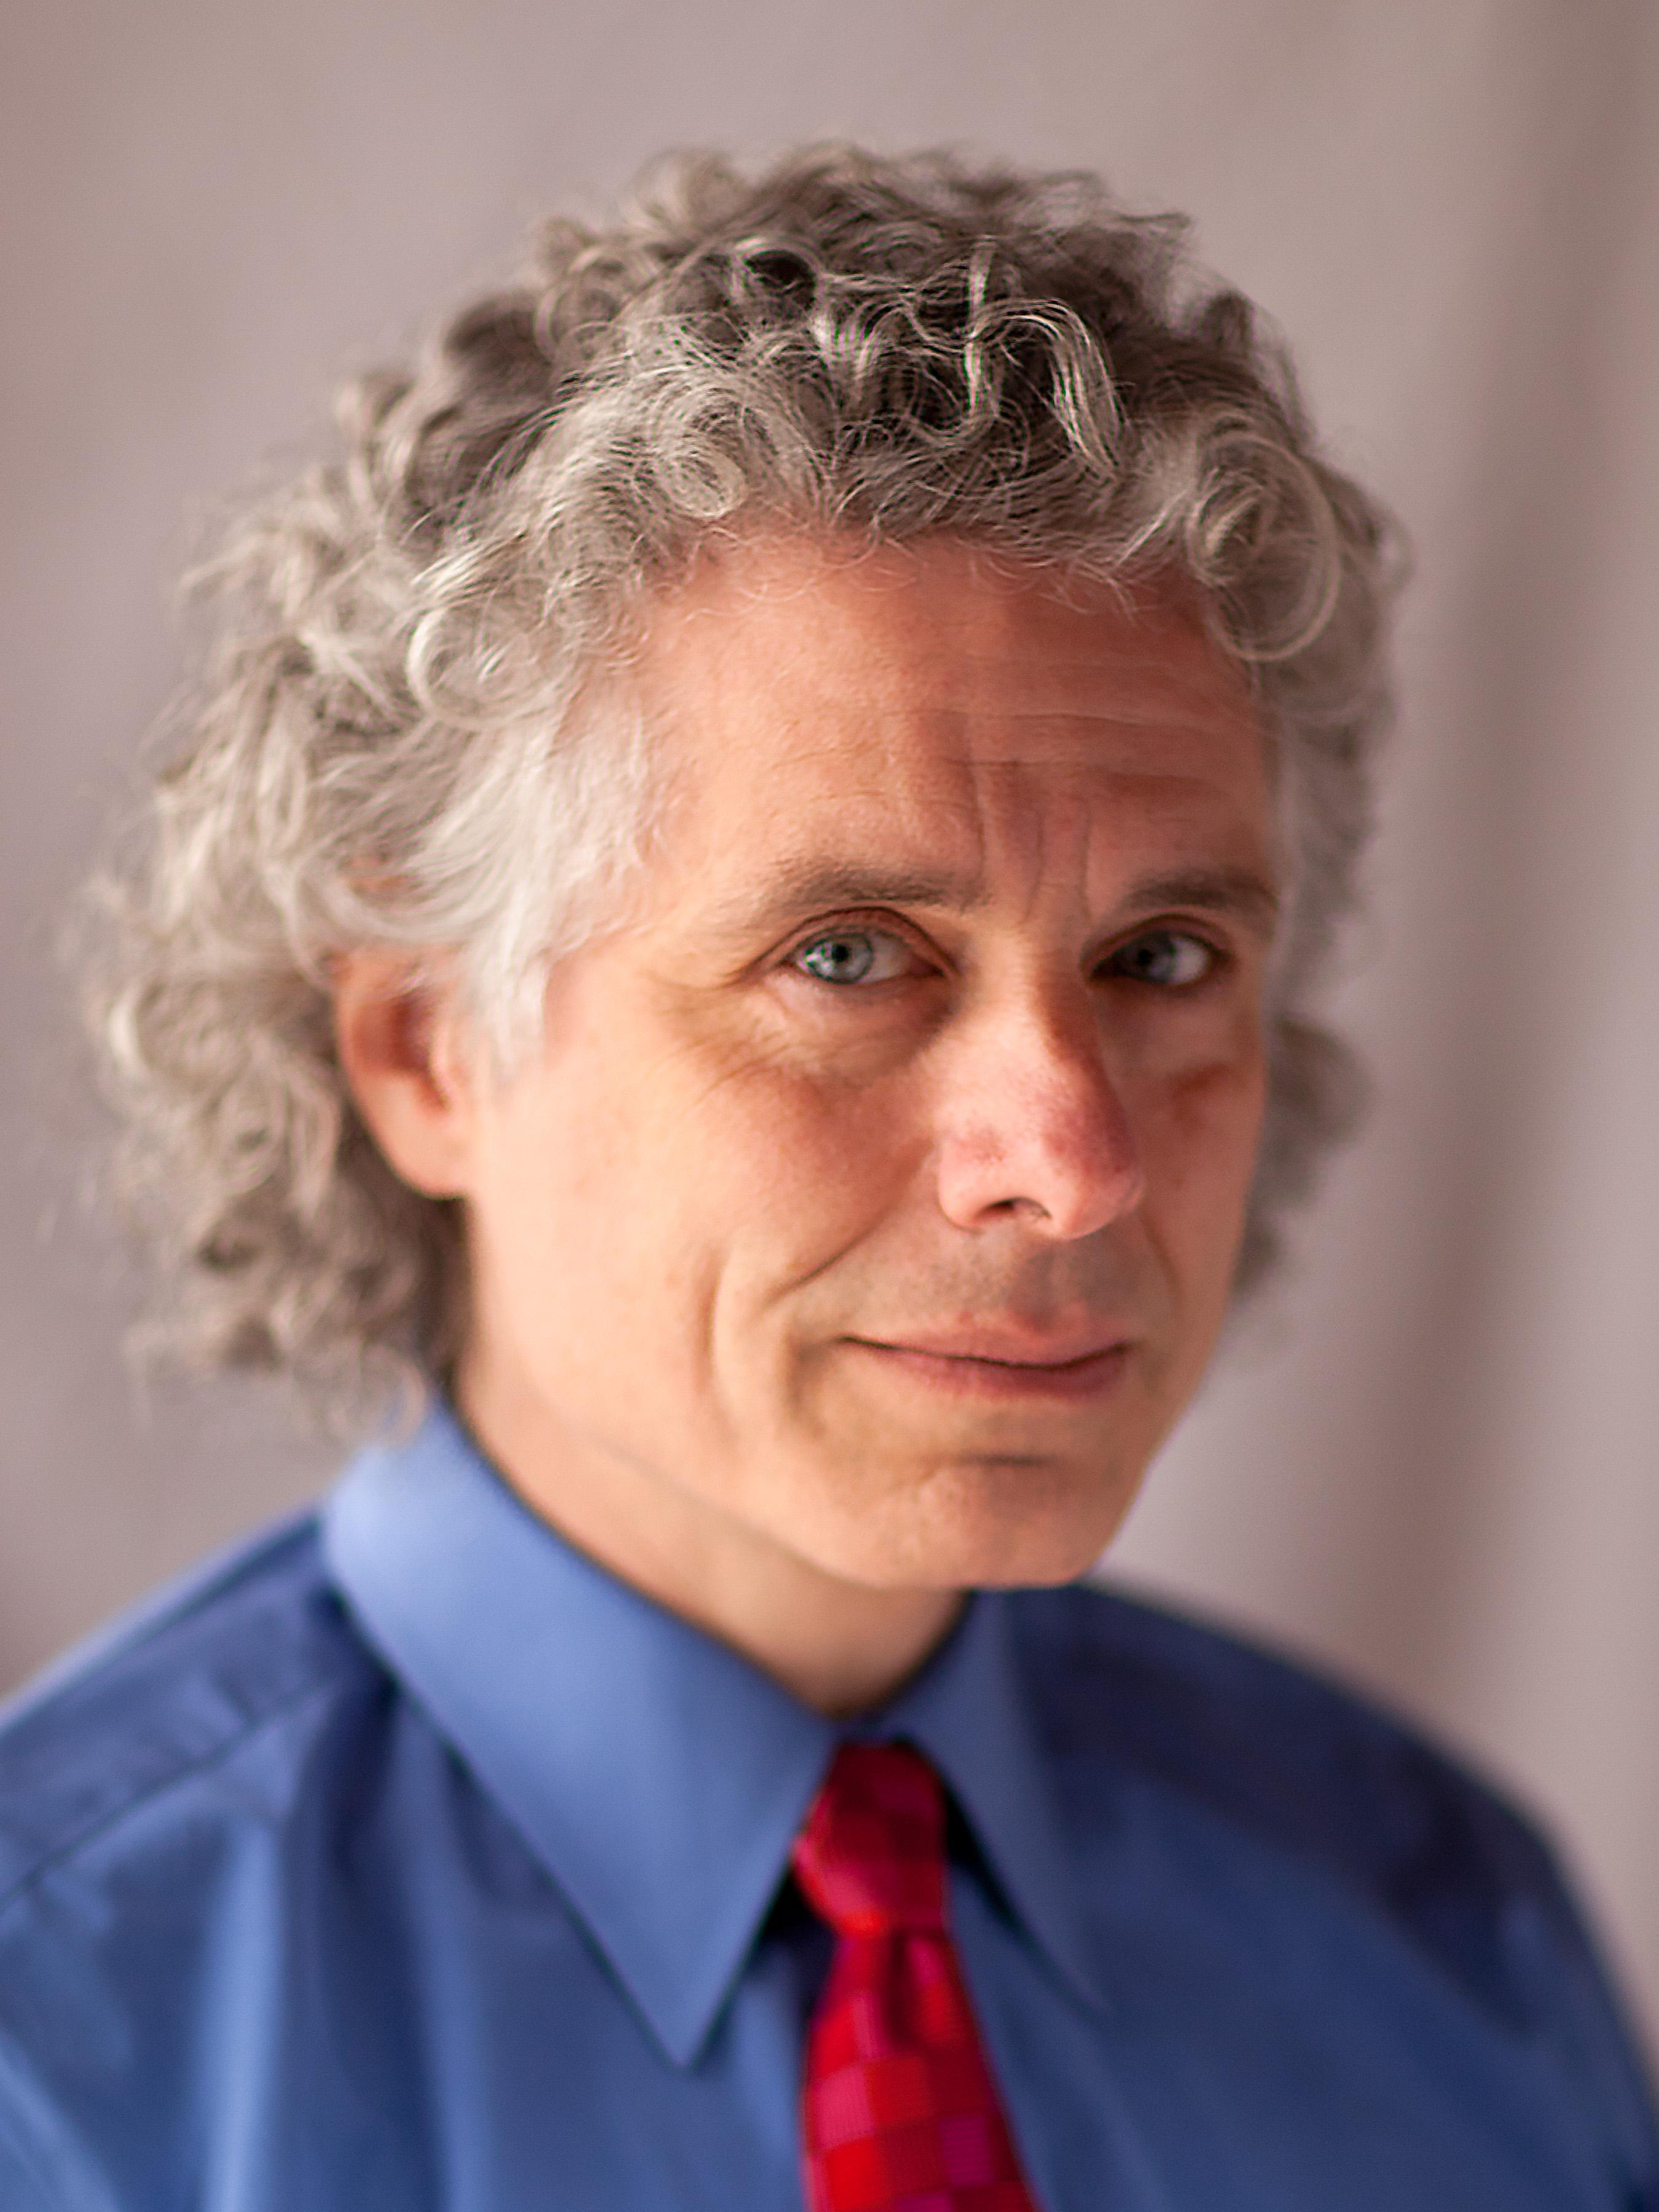 Steven Pinker on 'The Better Angels of Our Nature' (Video)